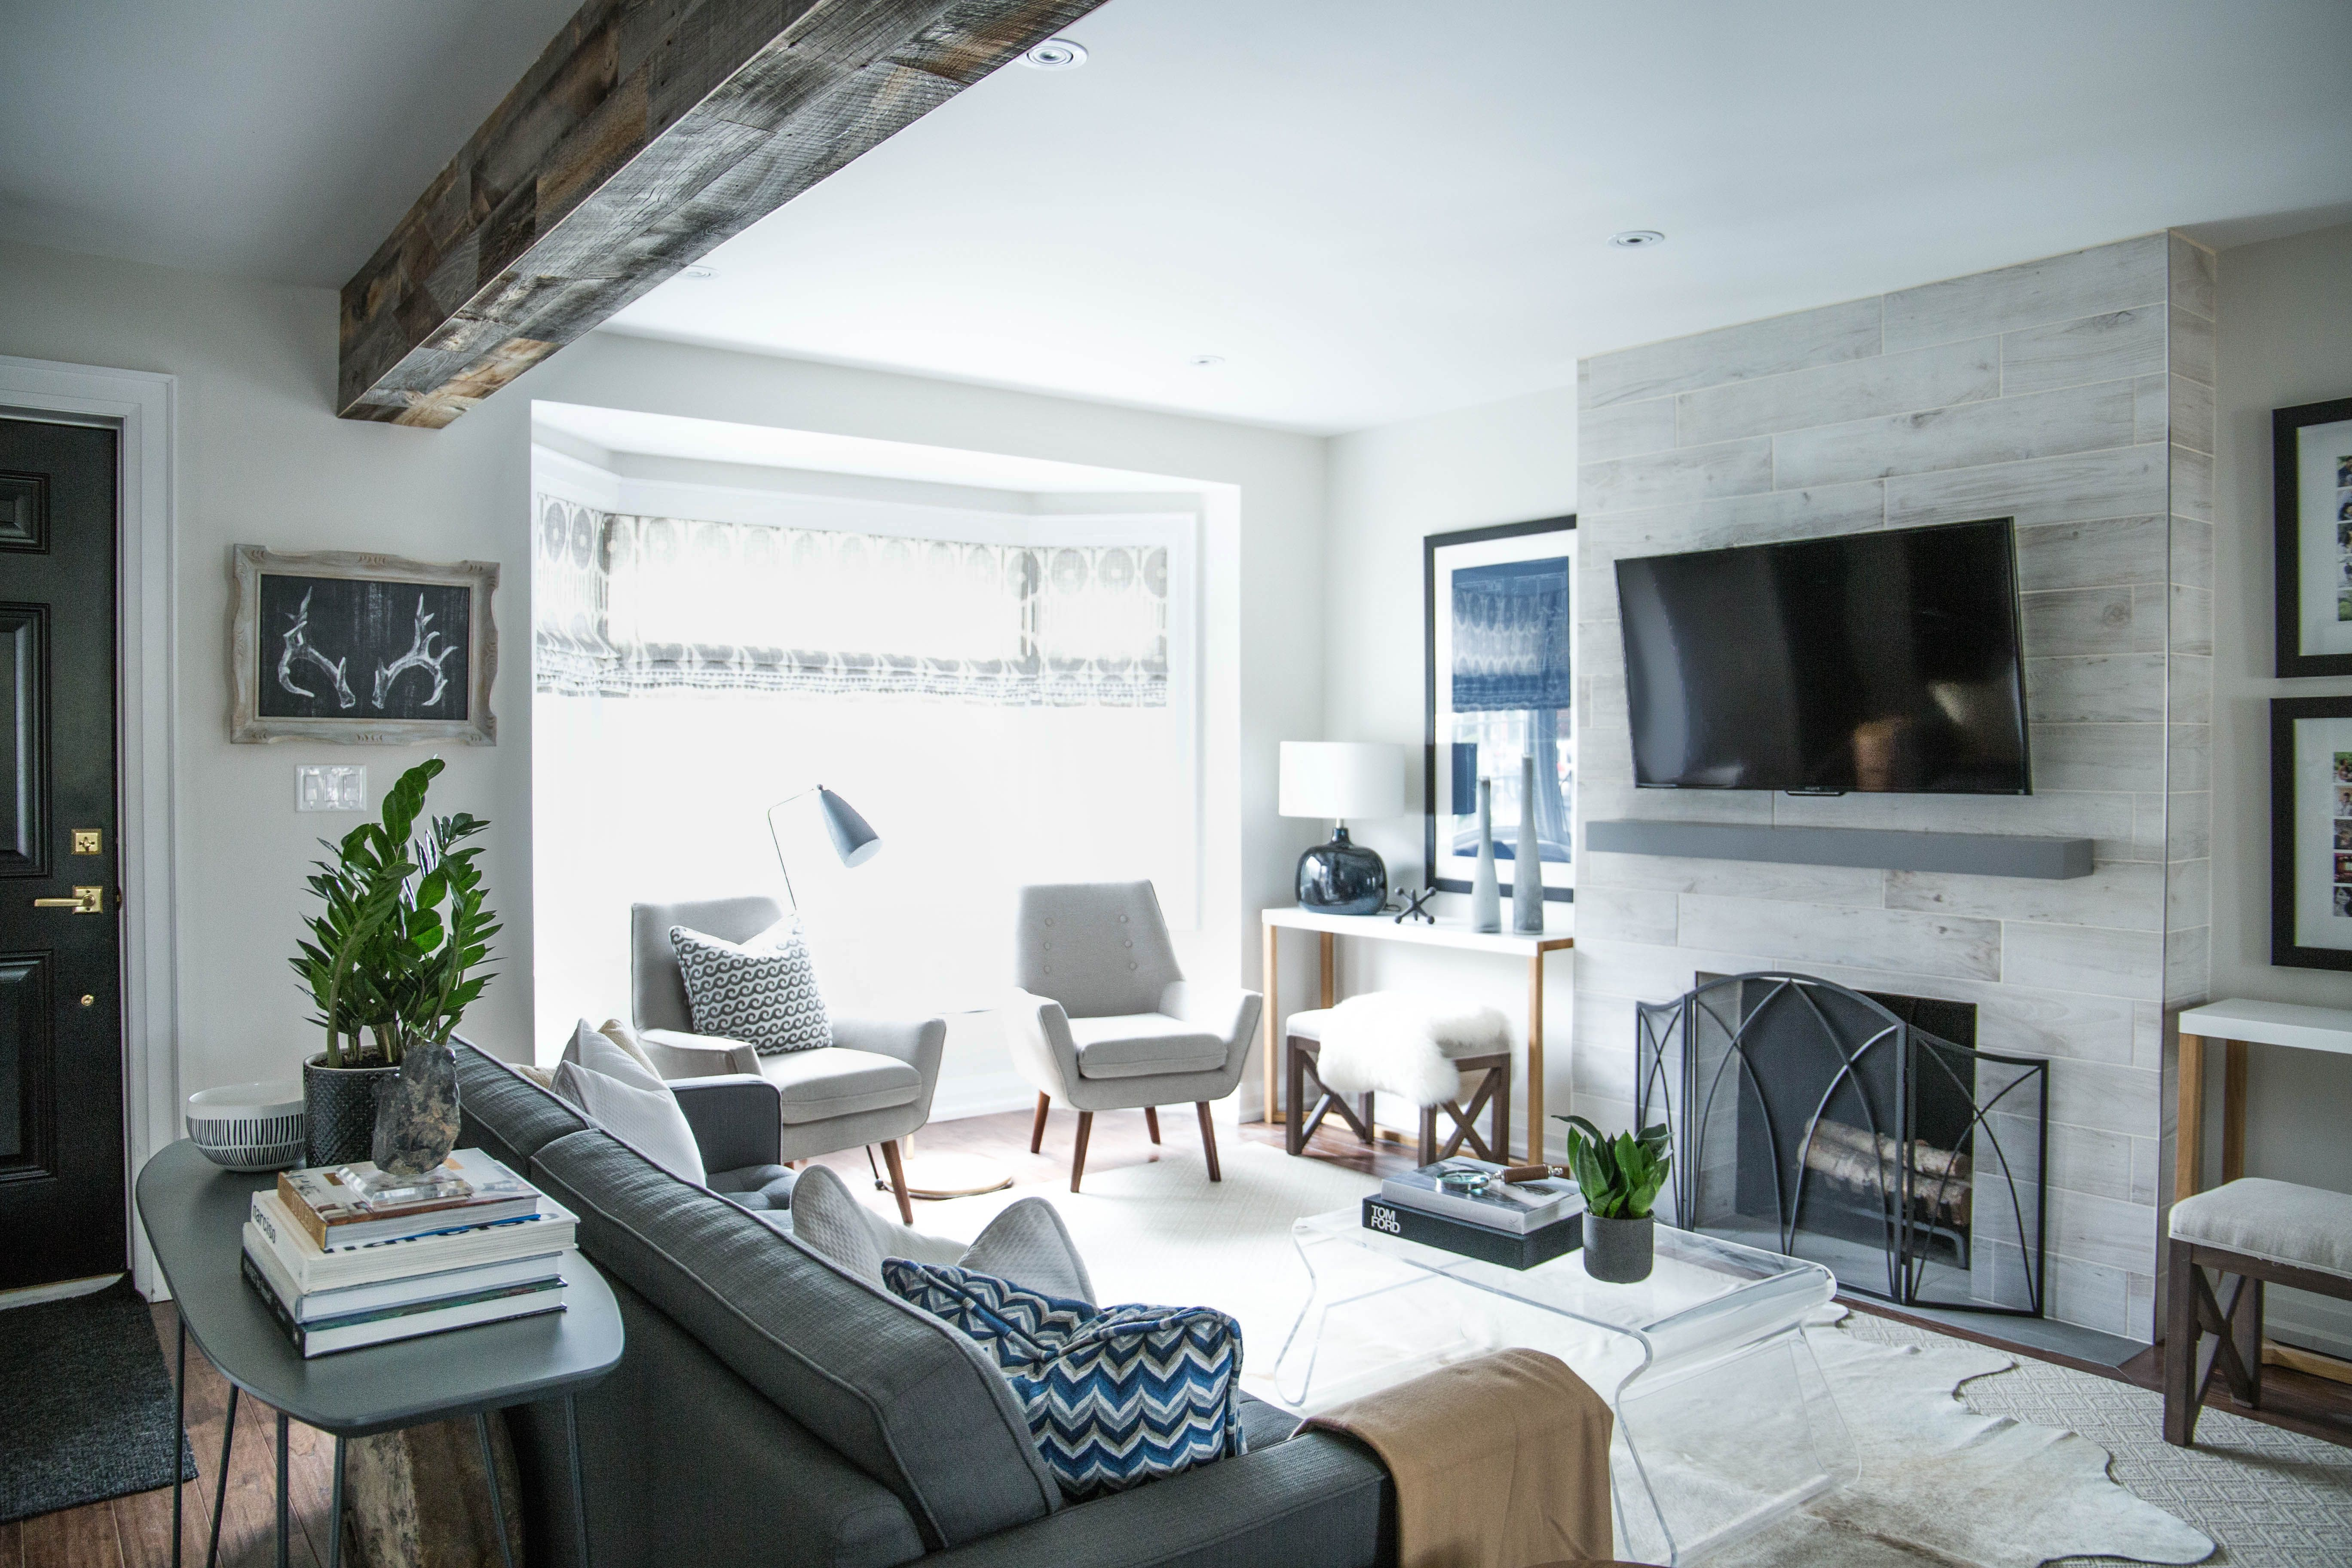 Property Brothers Family Room Reveal By Karin Bennett Designs